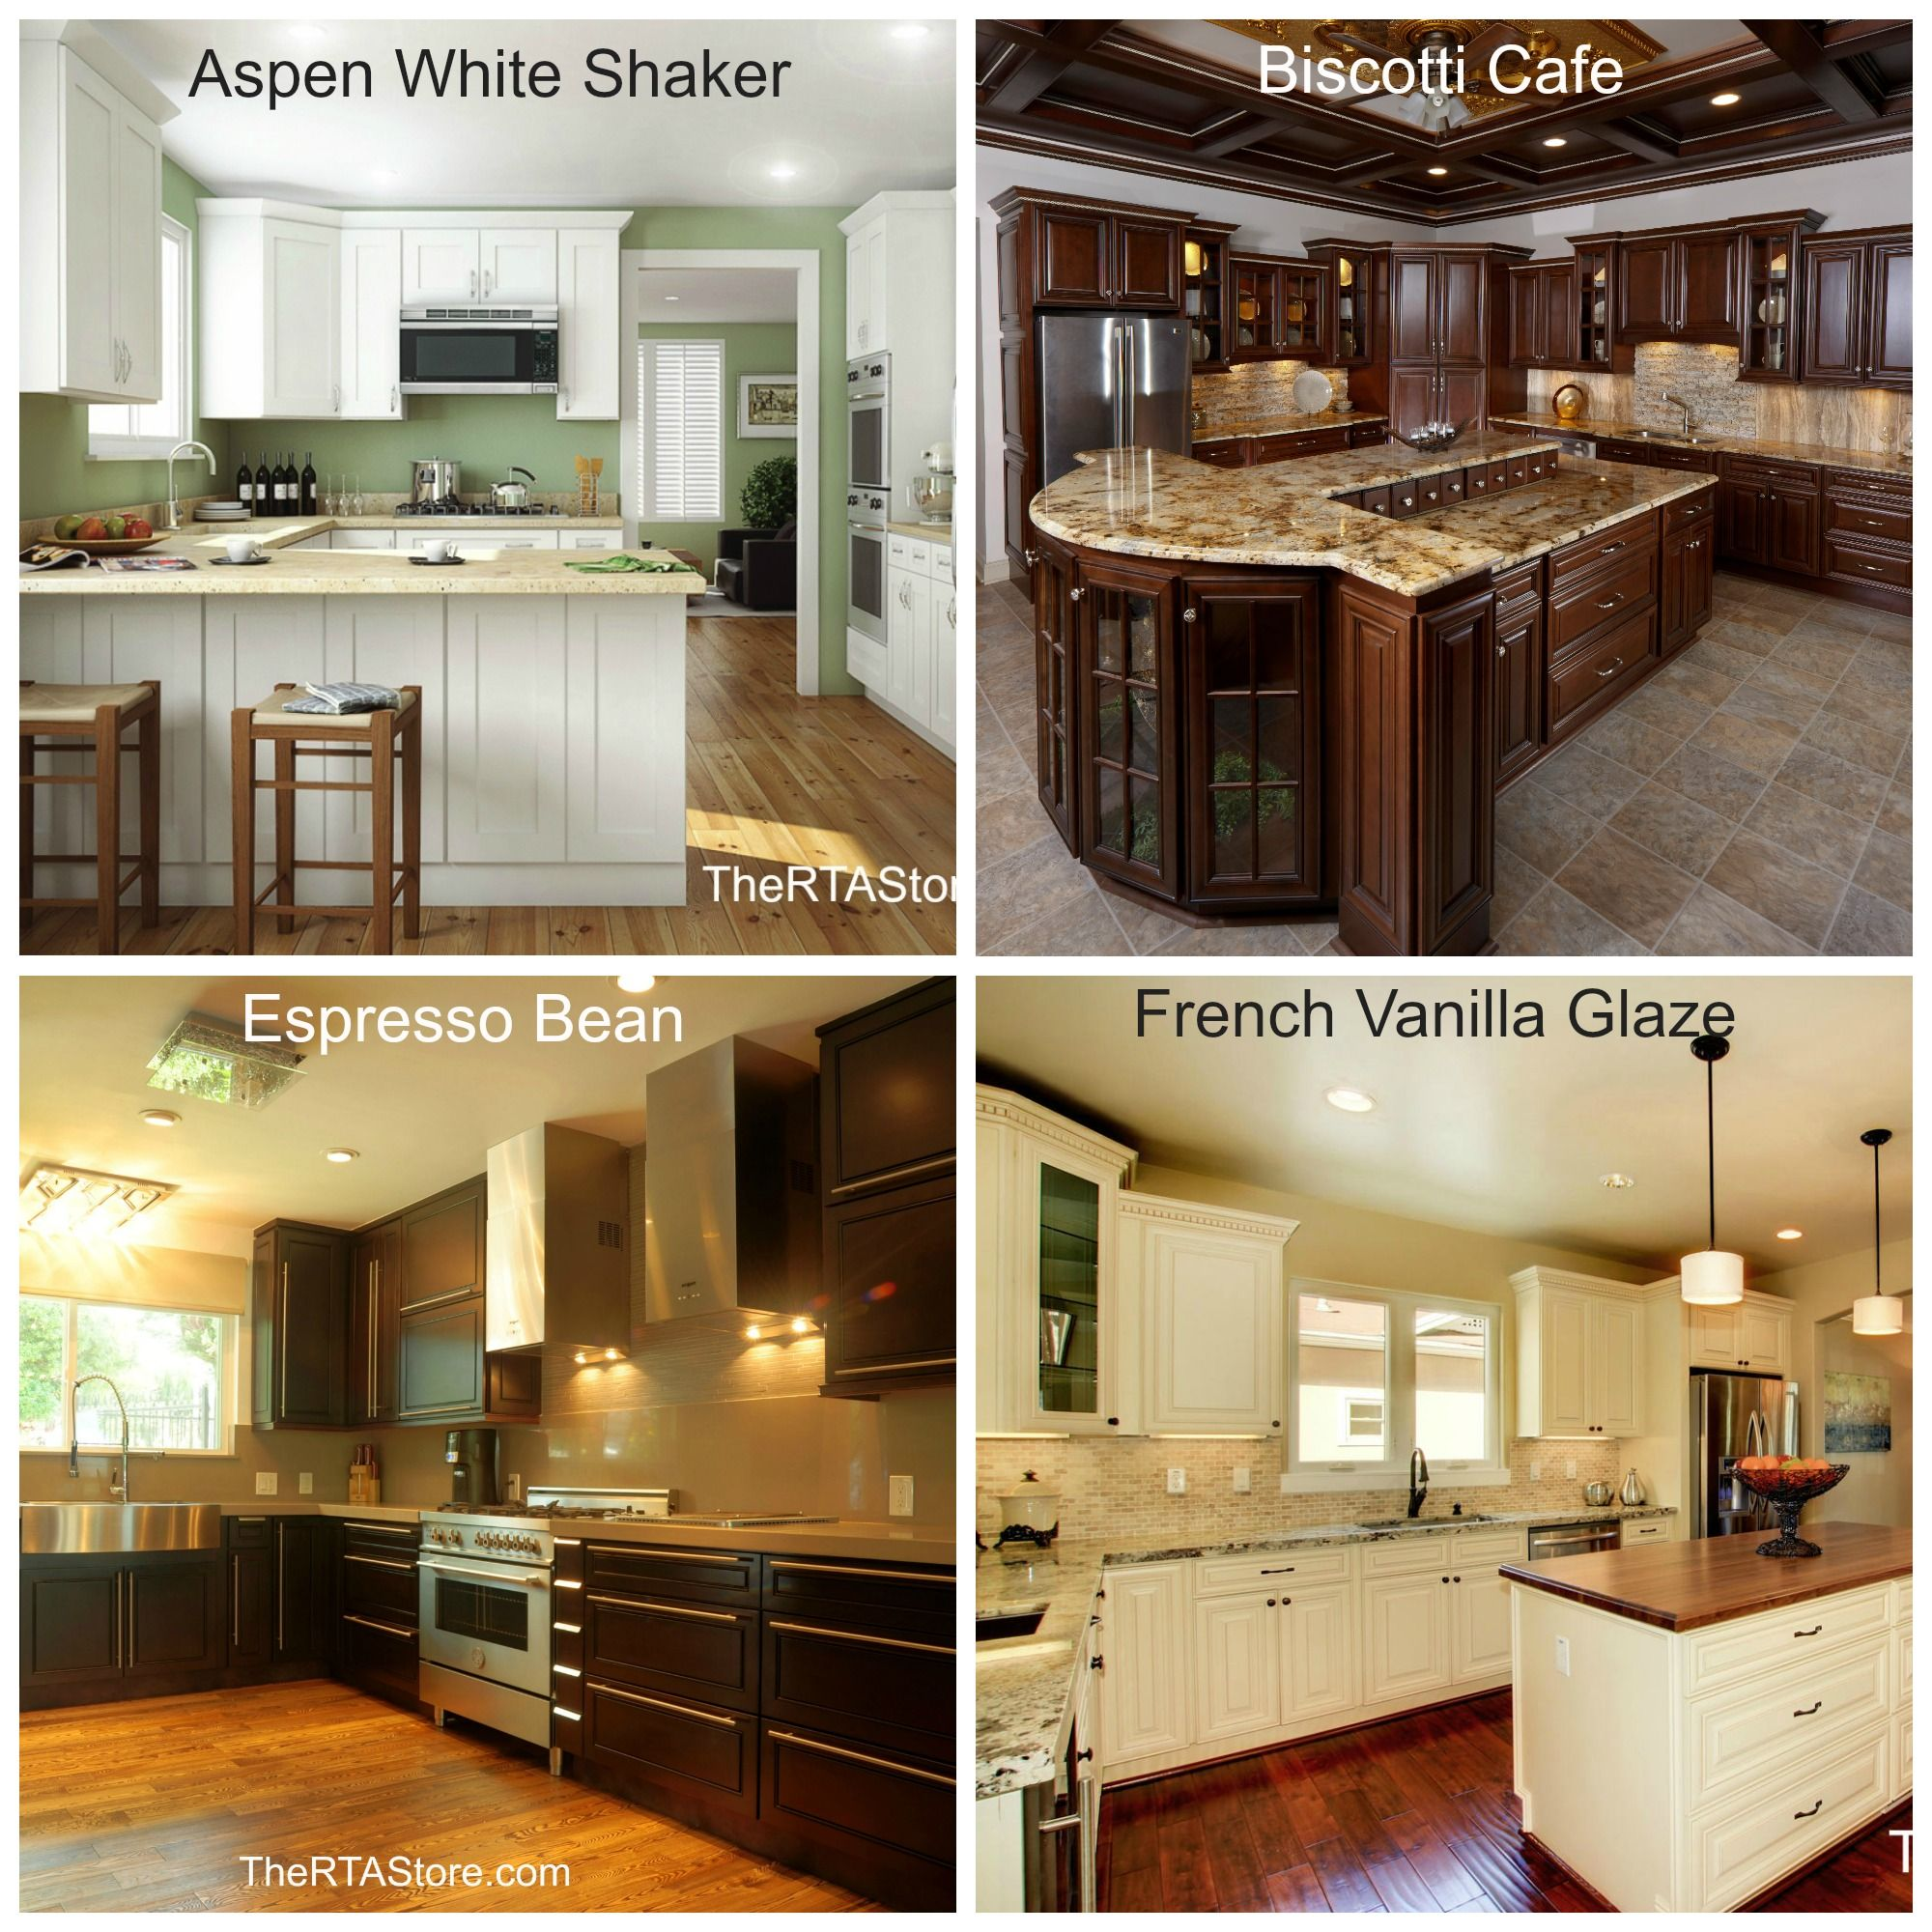 Rta Kitchen Cabinets: Which RTA Kitchen Cabinet Is Your Favorite? Leave Us A